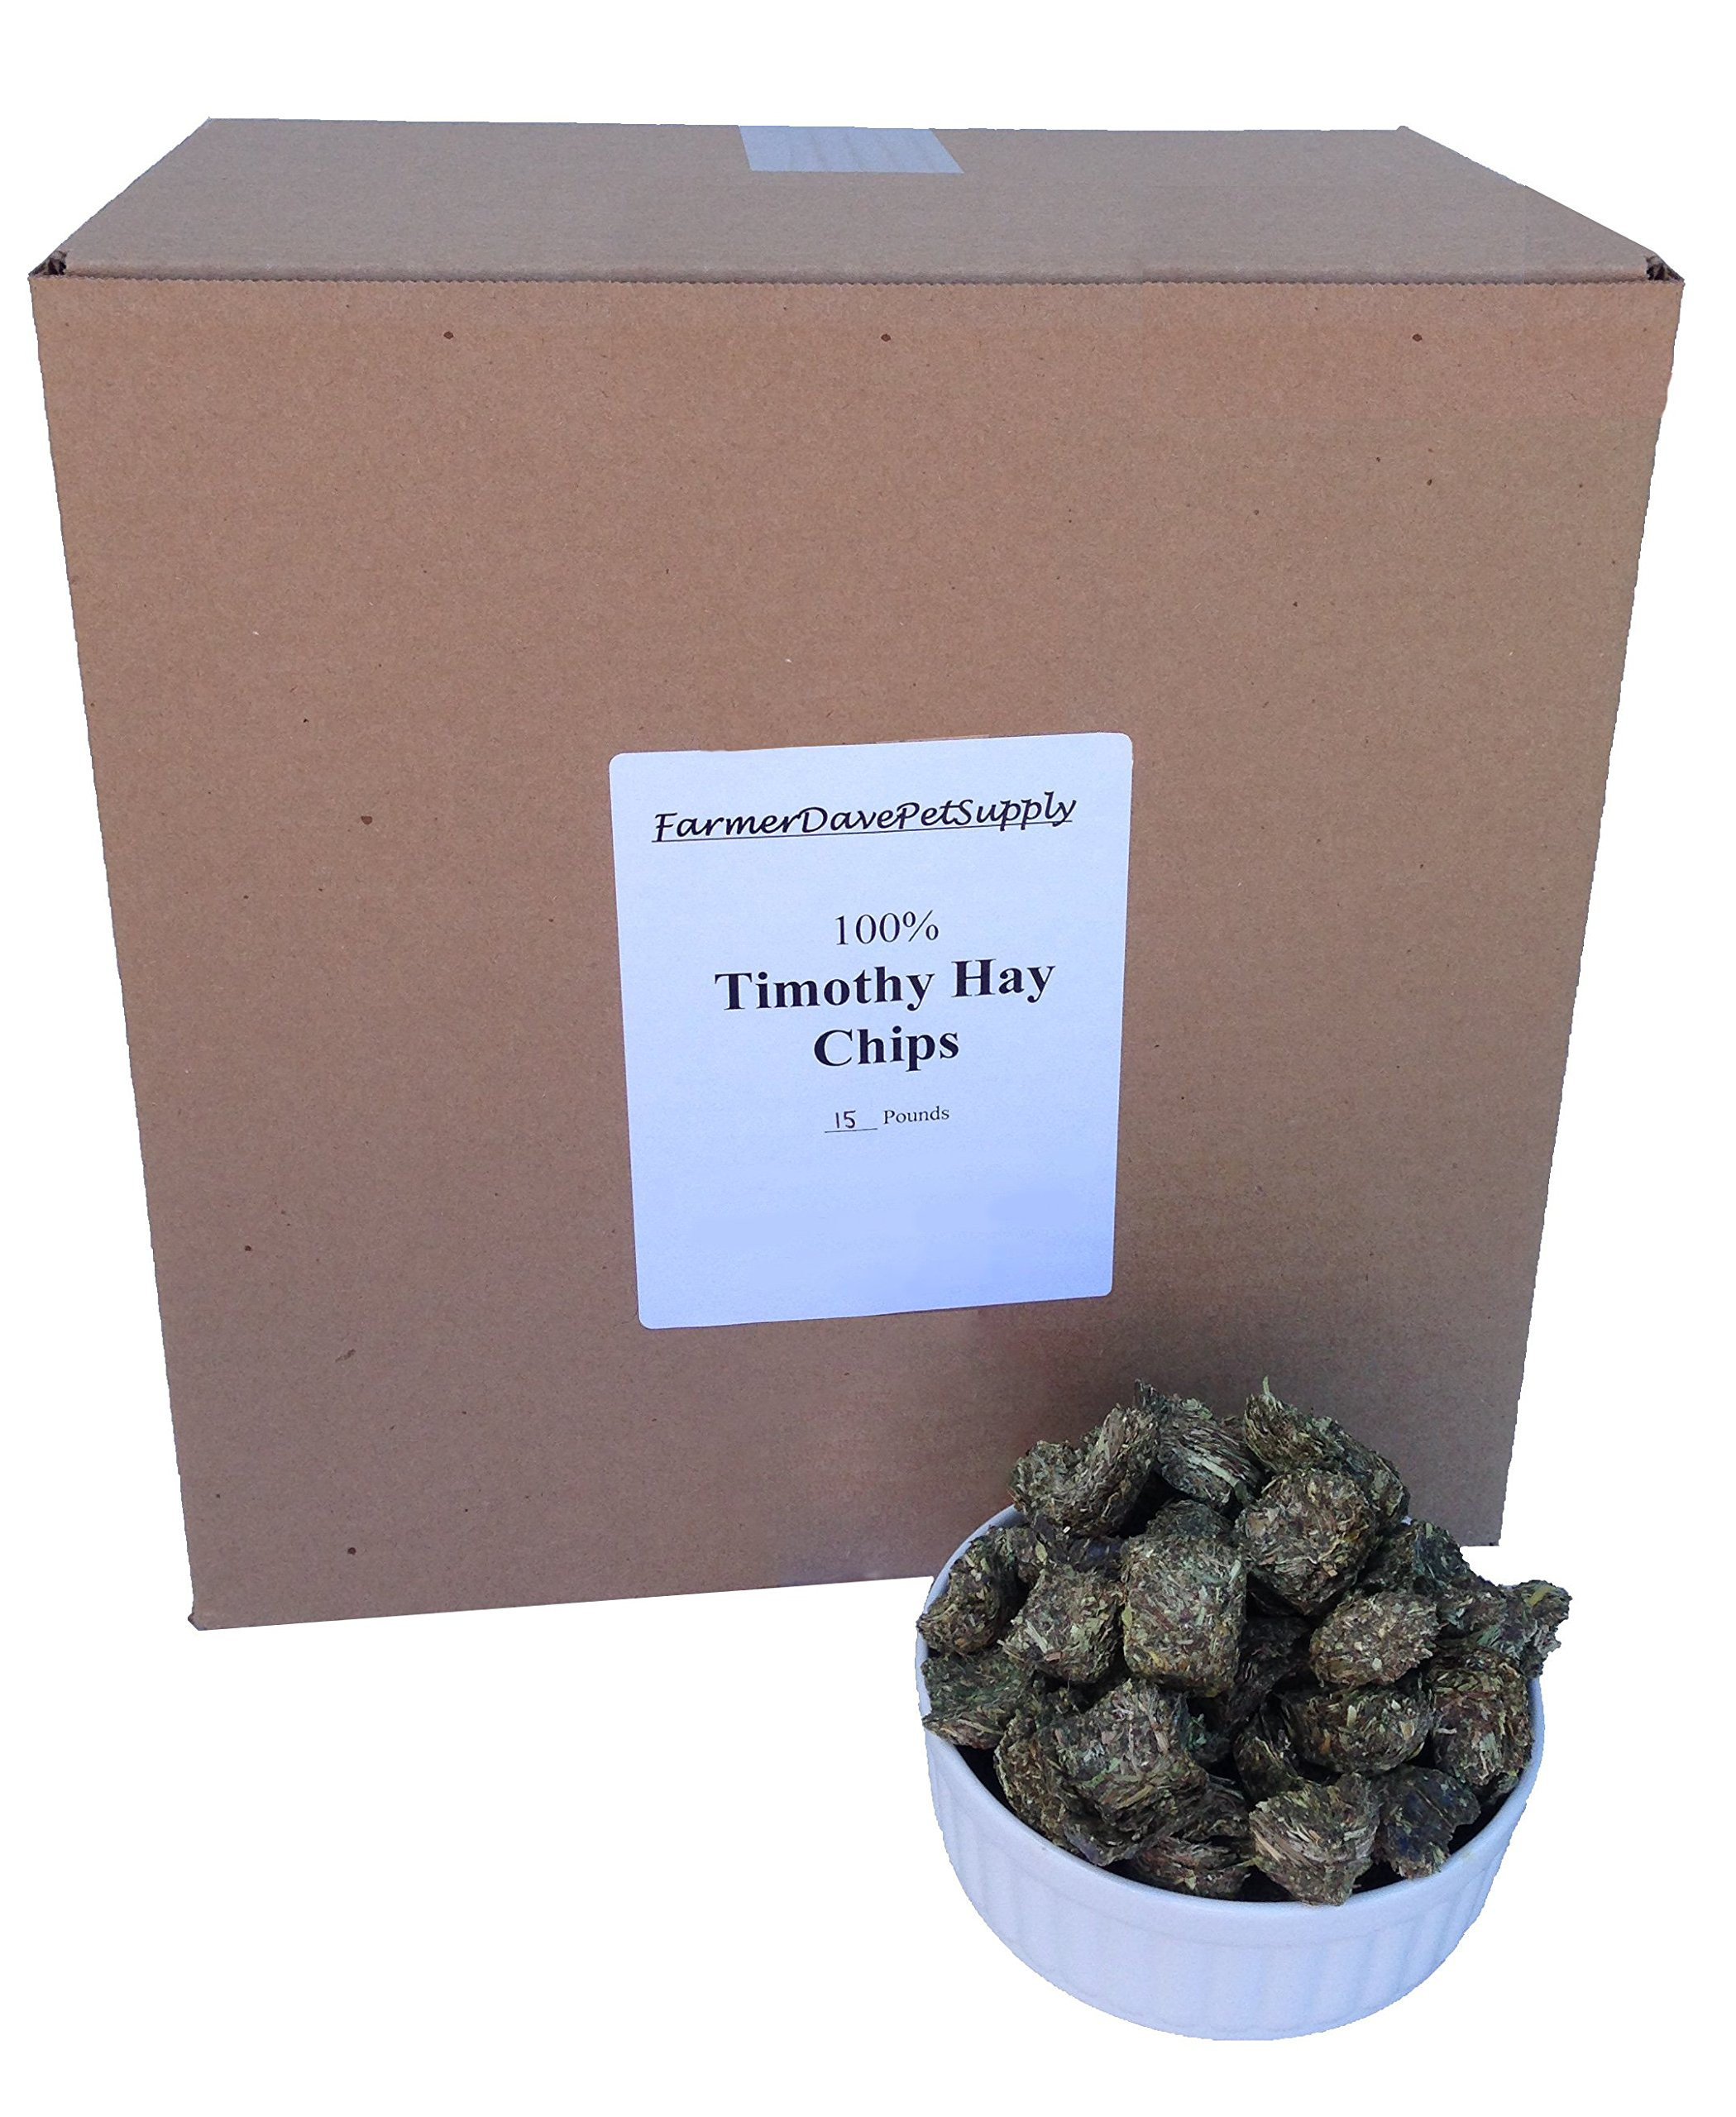 FarmerDavePetSupply 15 Pounds Premium Timothy Hay Chips for Pets